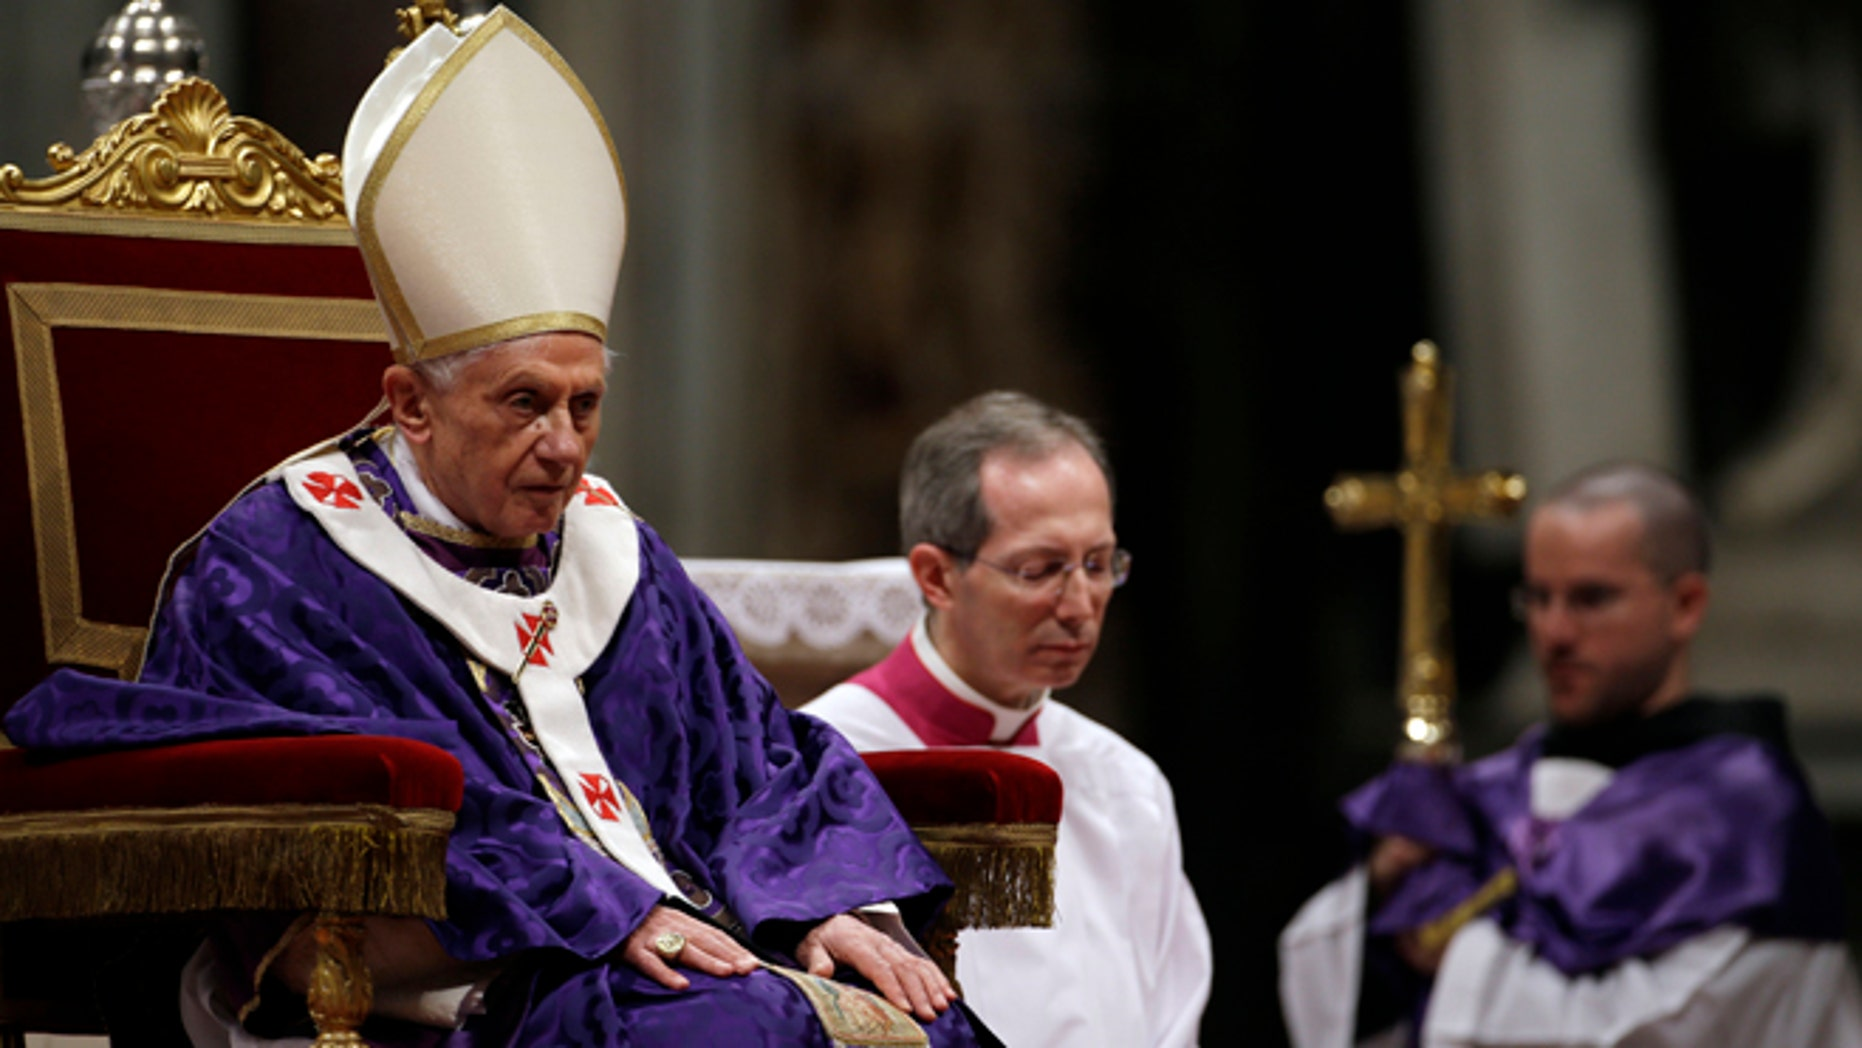 """Feb. 13, 2013: Pope Benedict XVI celebrates the Ash Wednesday mass in St. Peter's Basilica at the Vatican. Ash Wednesday marks the beginning of Lent, a solemn period of 40 days of prayer and self-denial leading up to Easter. Pope Benedict XVI told thousands of faithful Wednesday that he was resigning for """"the good of the church"""", an extraordinary scene of a pope explaining himself to his flock that unfolded in his first appearance since dropping the bombshell announcement."""